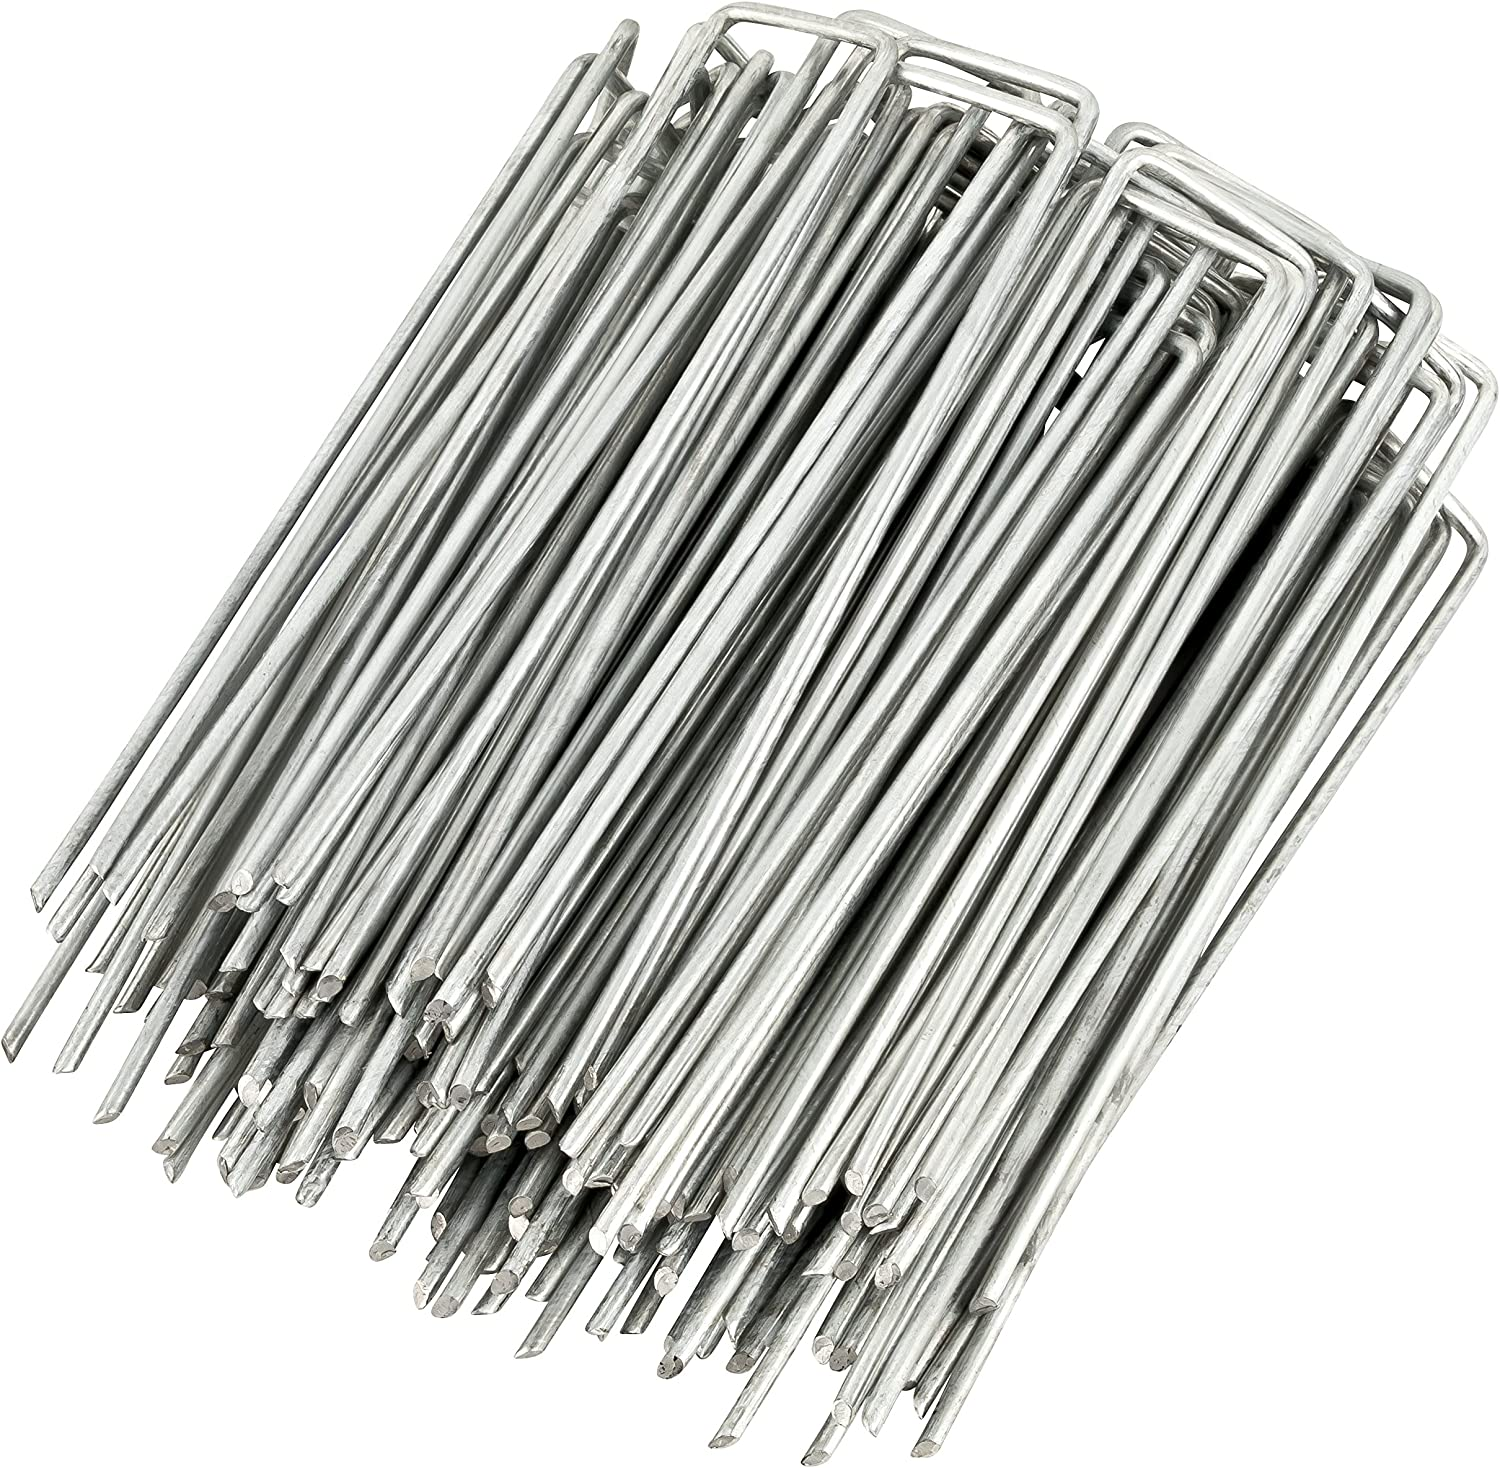 GardenMate 100-Pack Anti-Rust 6'' 11 Gauge Heavy-Duty Flat-Top U-Shaped Garden Securing Stakes/Spikes/Pins/Pegs - Galvanized Sod Staples for Anchoring Landscape Fabric